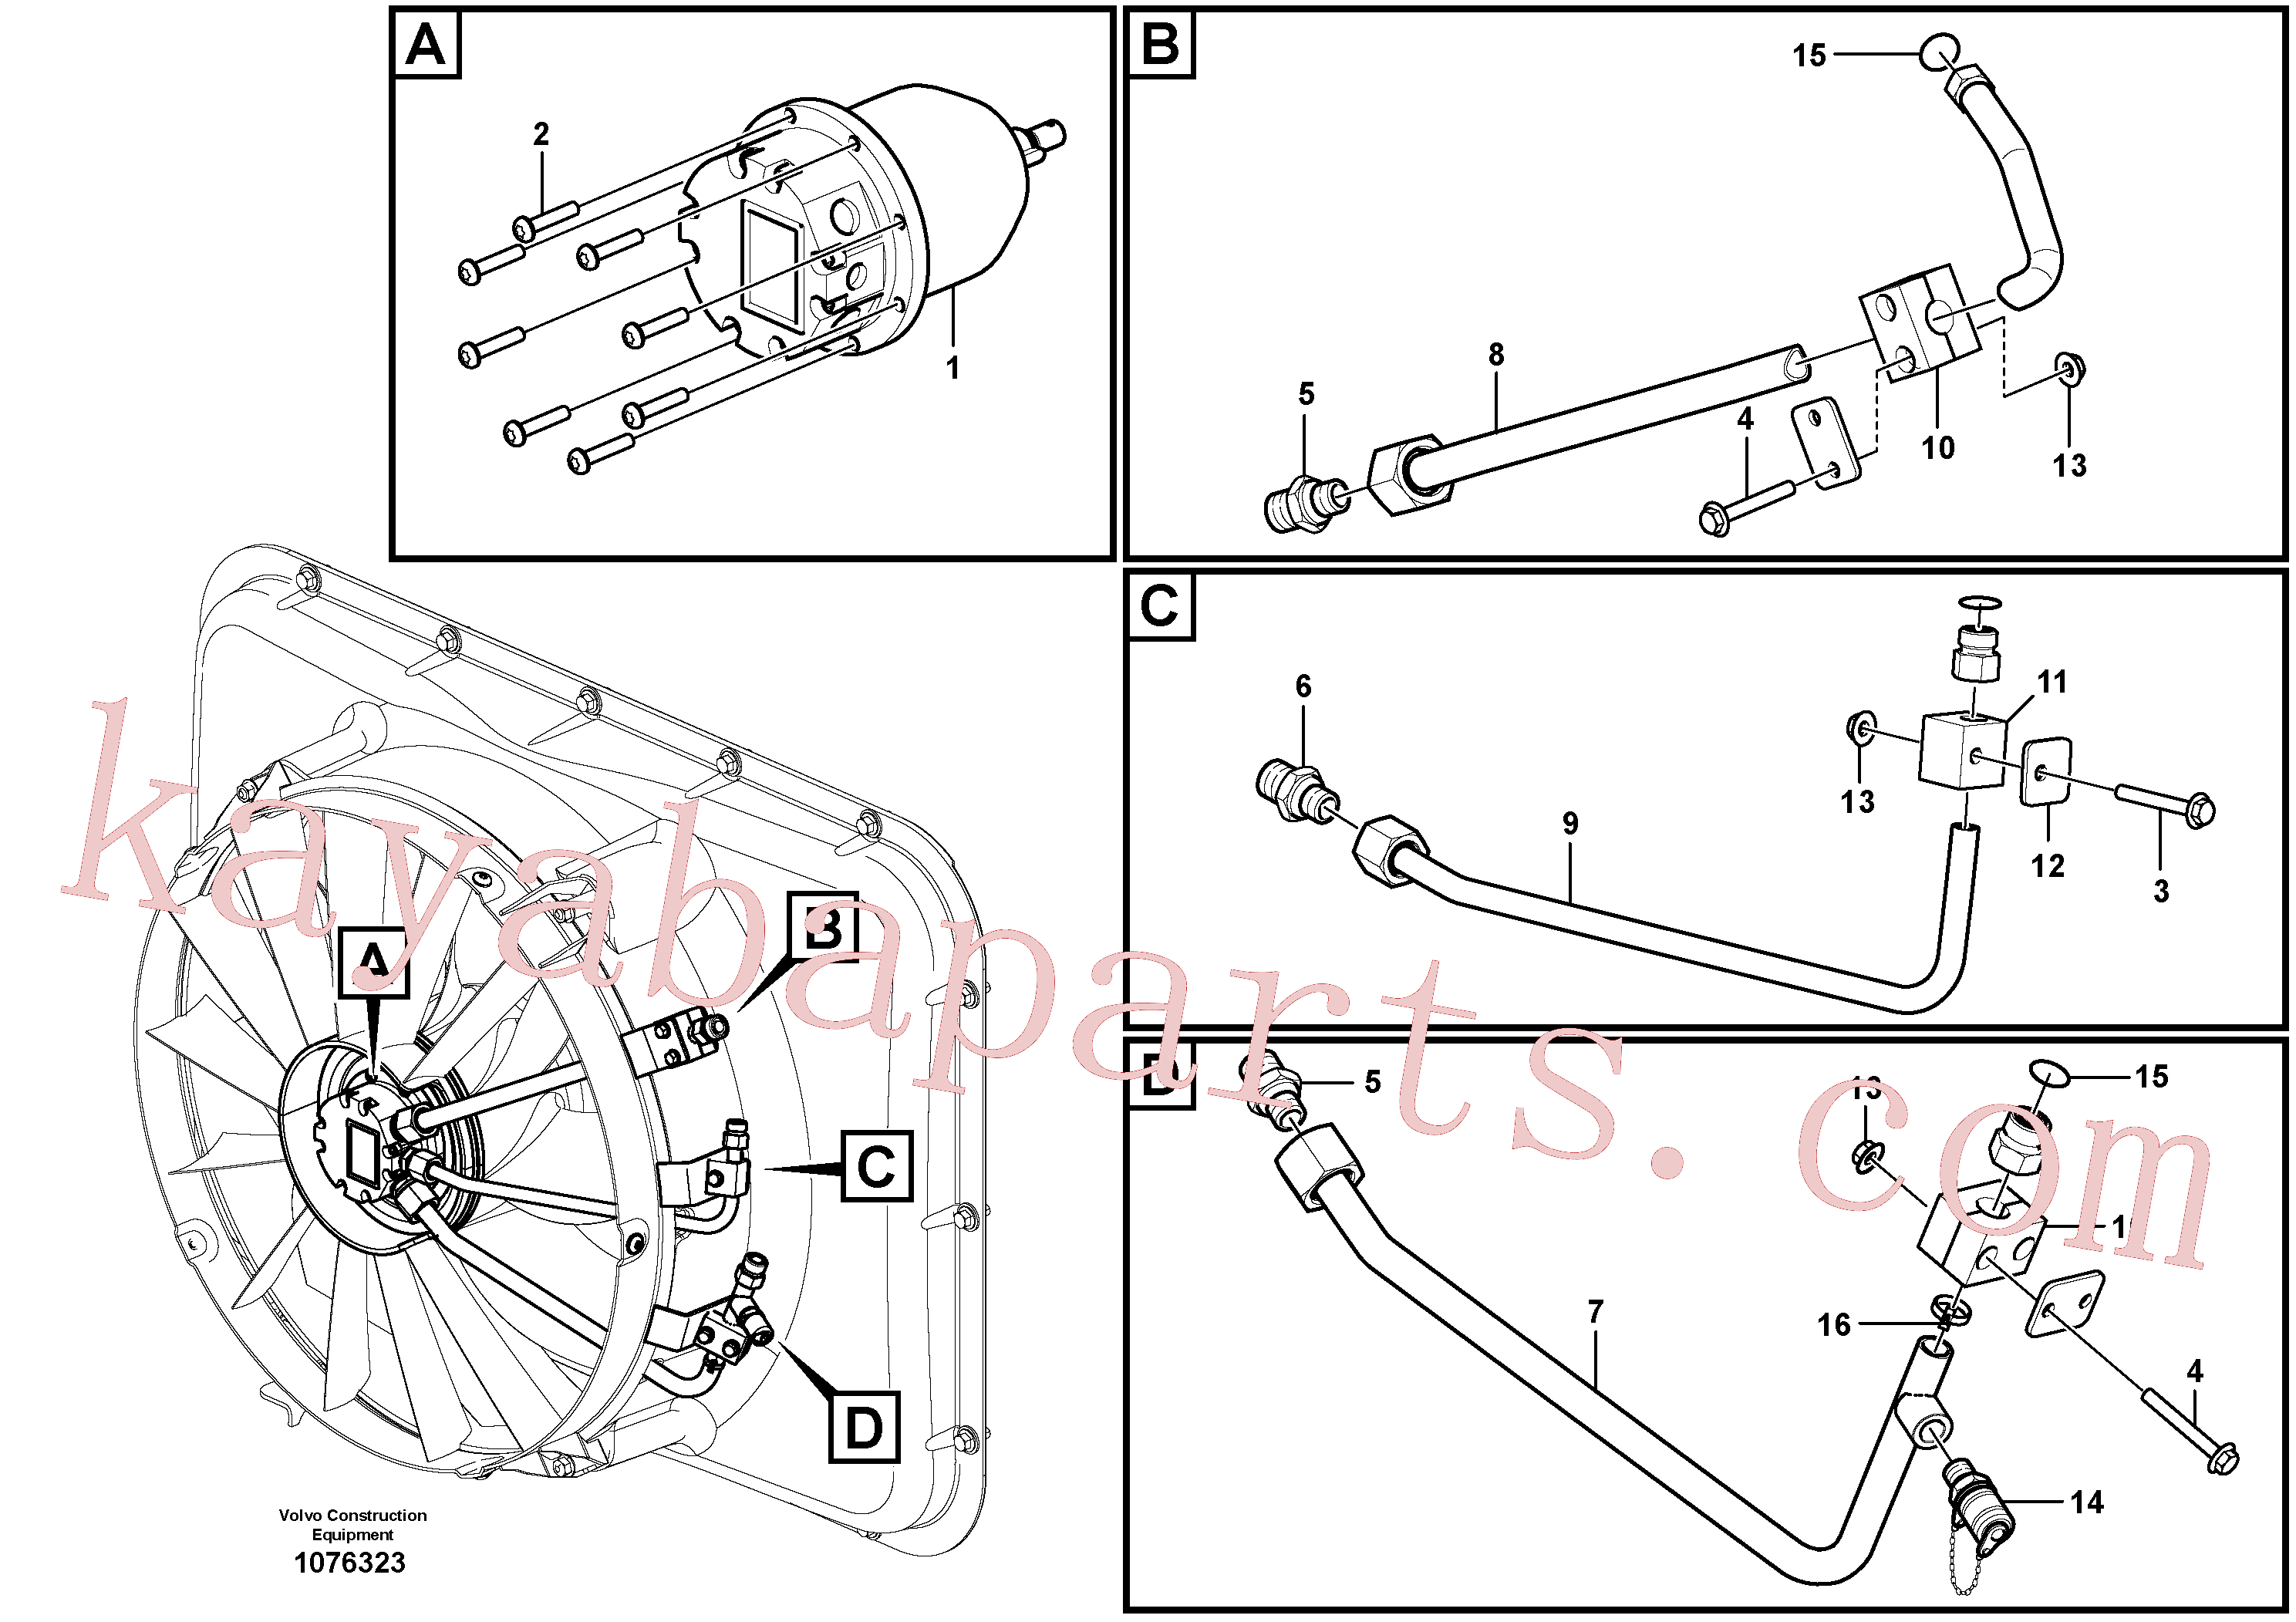 VOE11116120 for Volvo Fan drive(1076323 assembly)